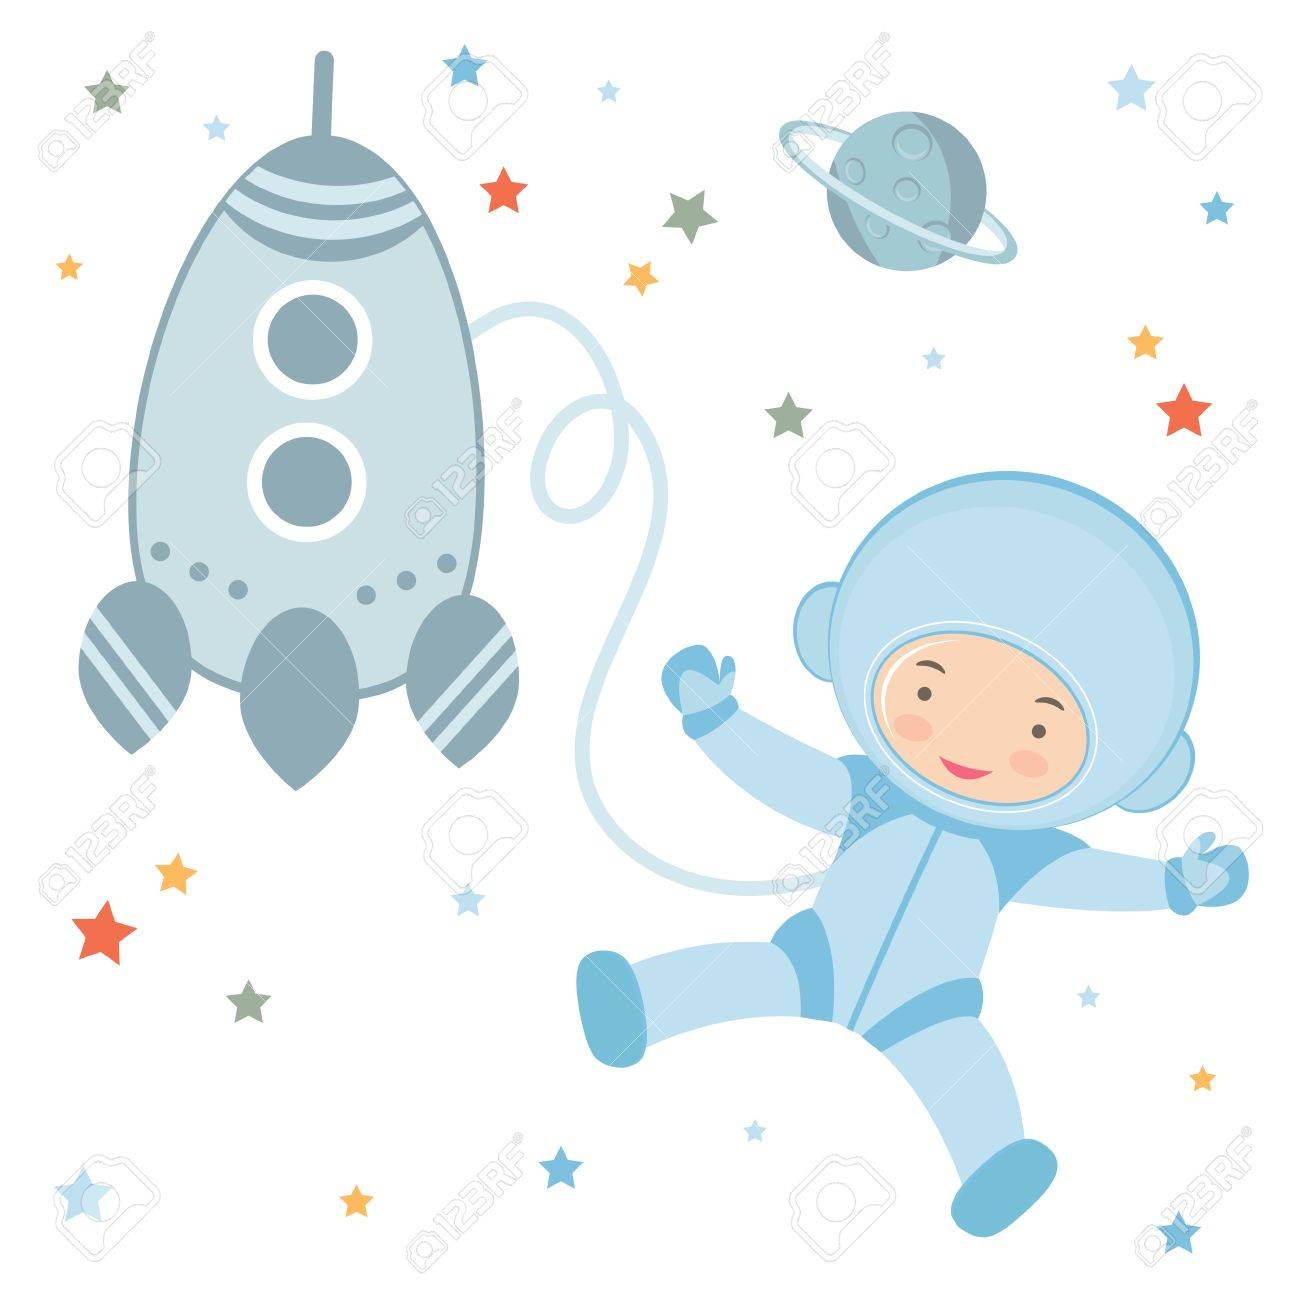 An illustration of Cute little astronaut in outer space Stock Vector - 17710675